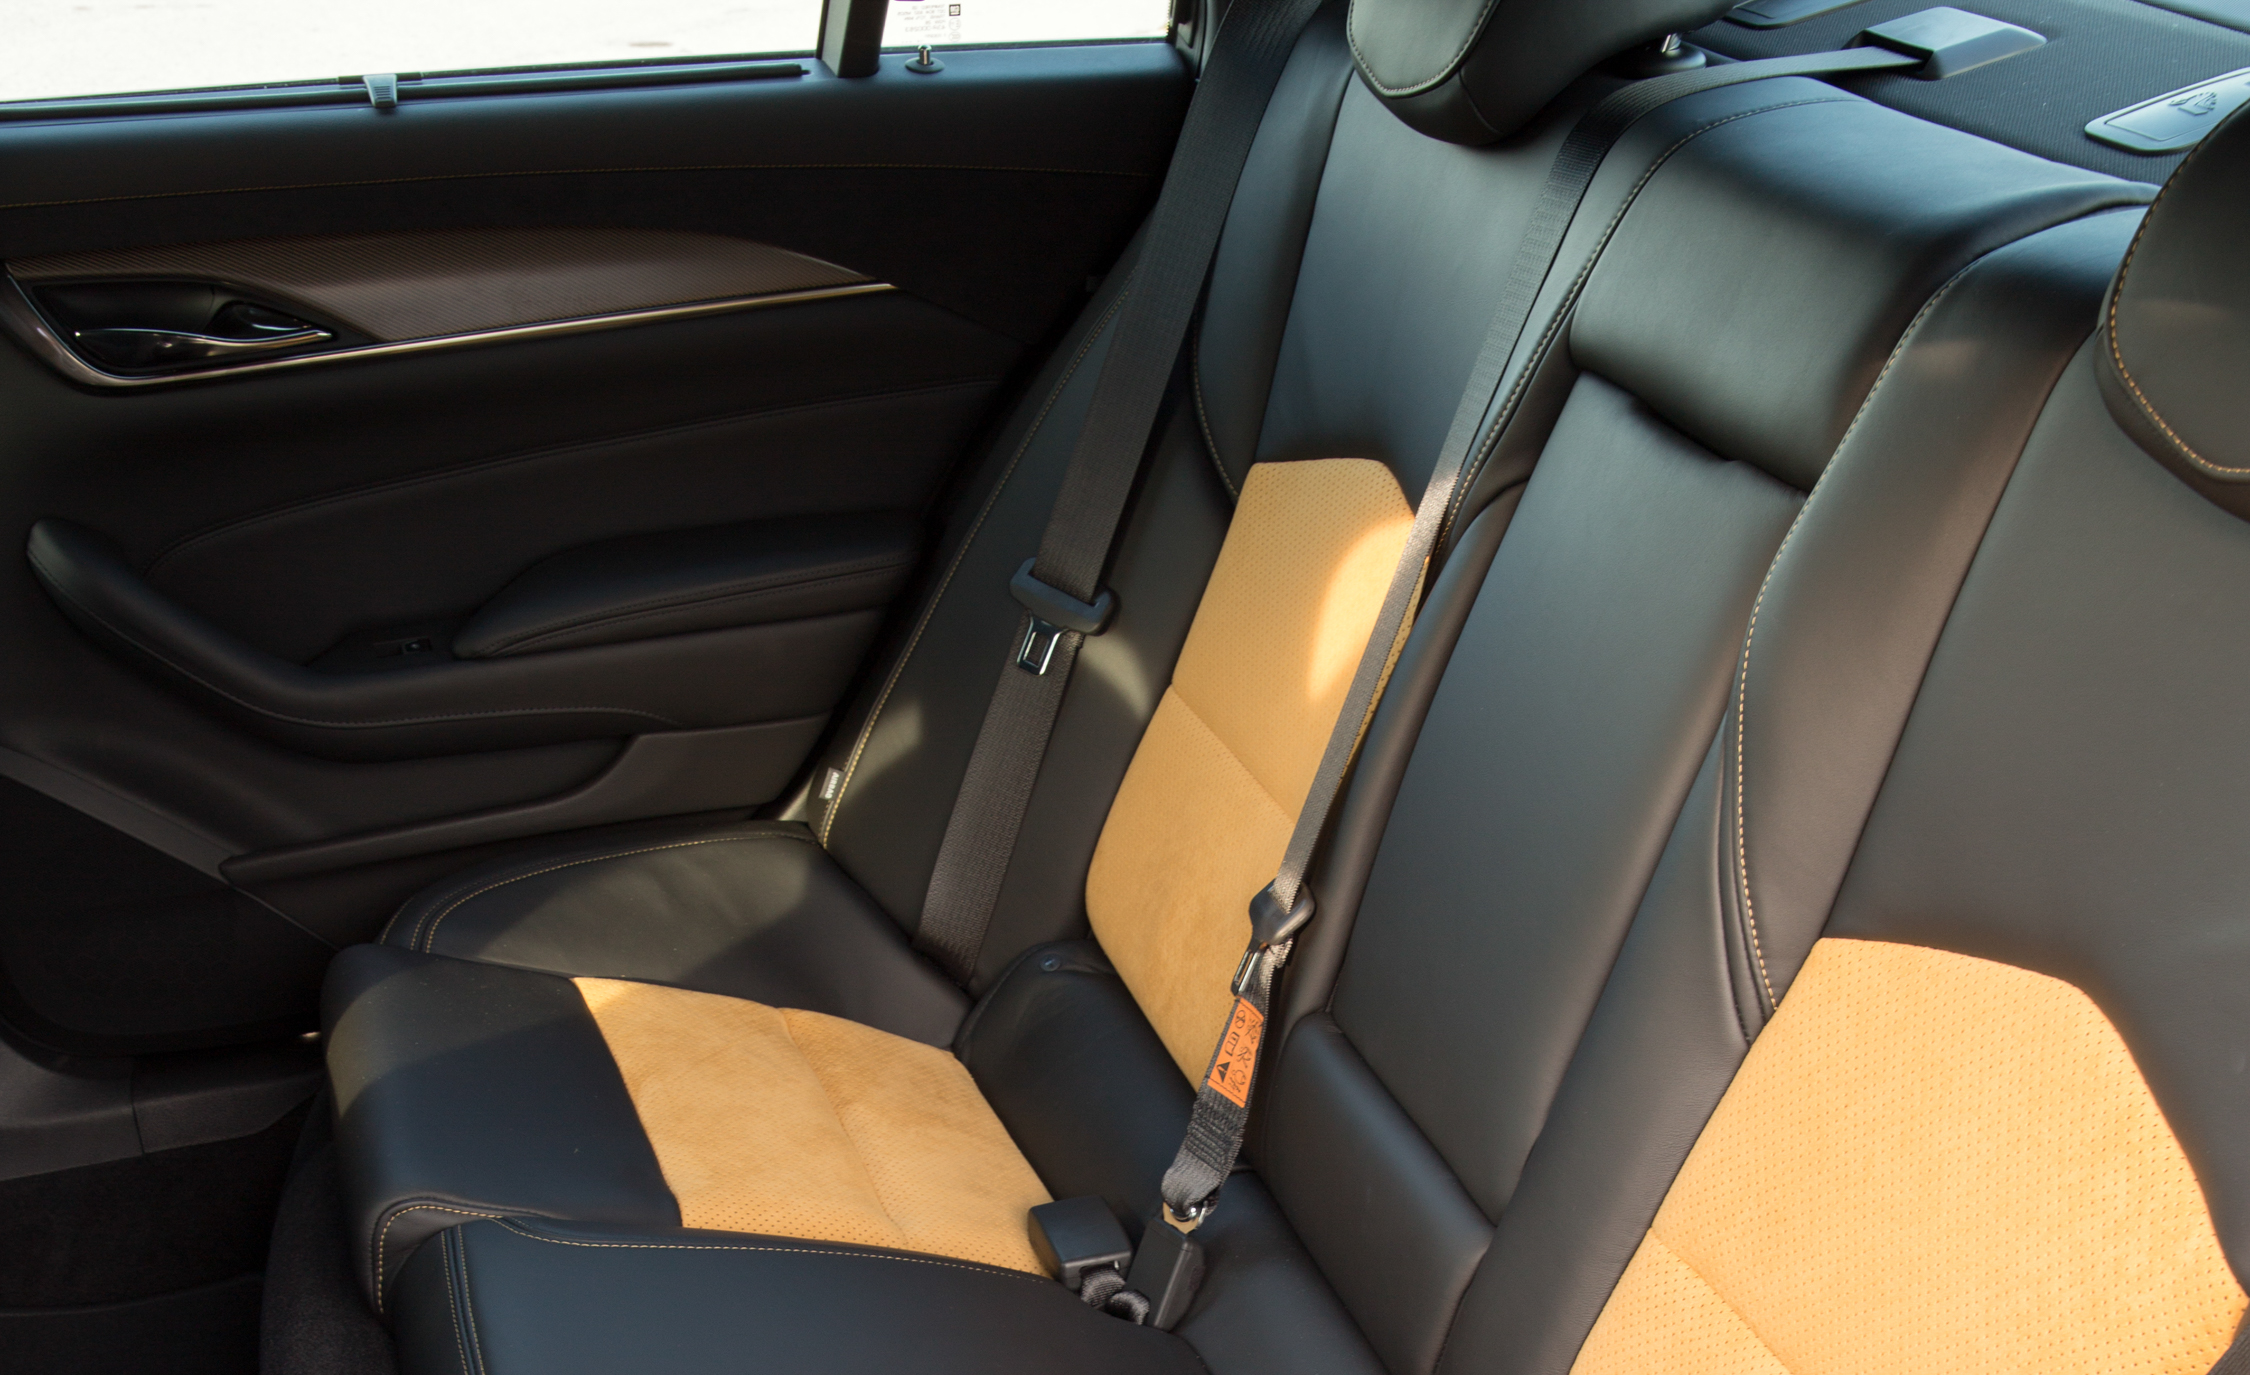 2016 Cadillac CTS-V Interior Seats Rear